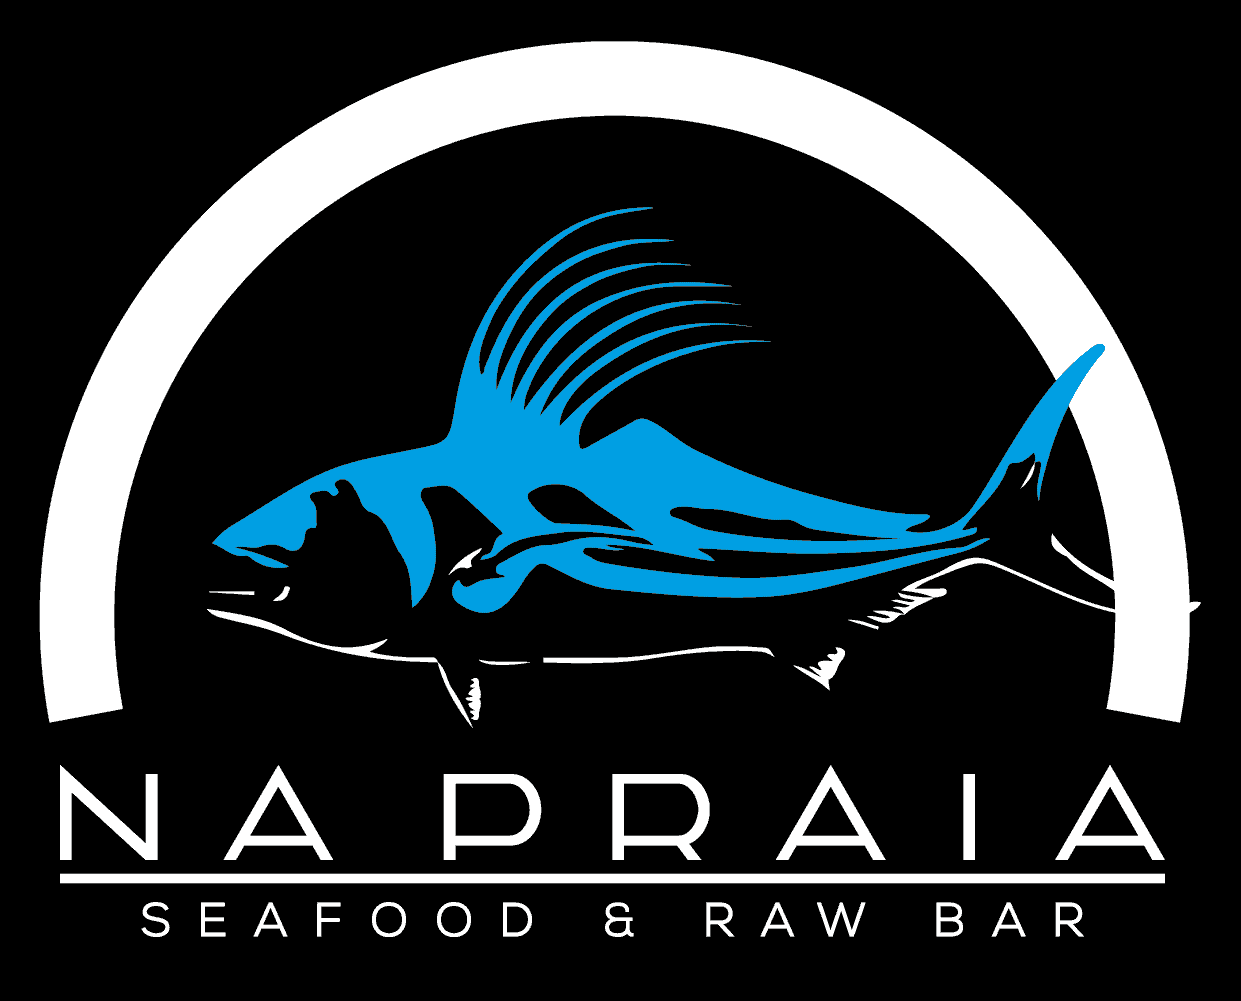 Na Praia Seafood & Raw Bar